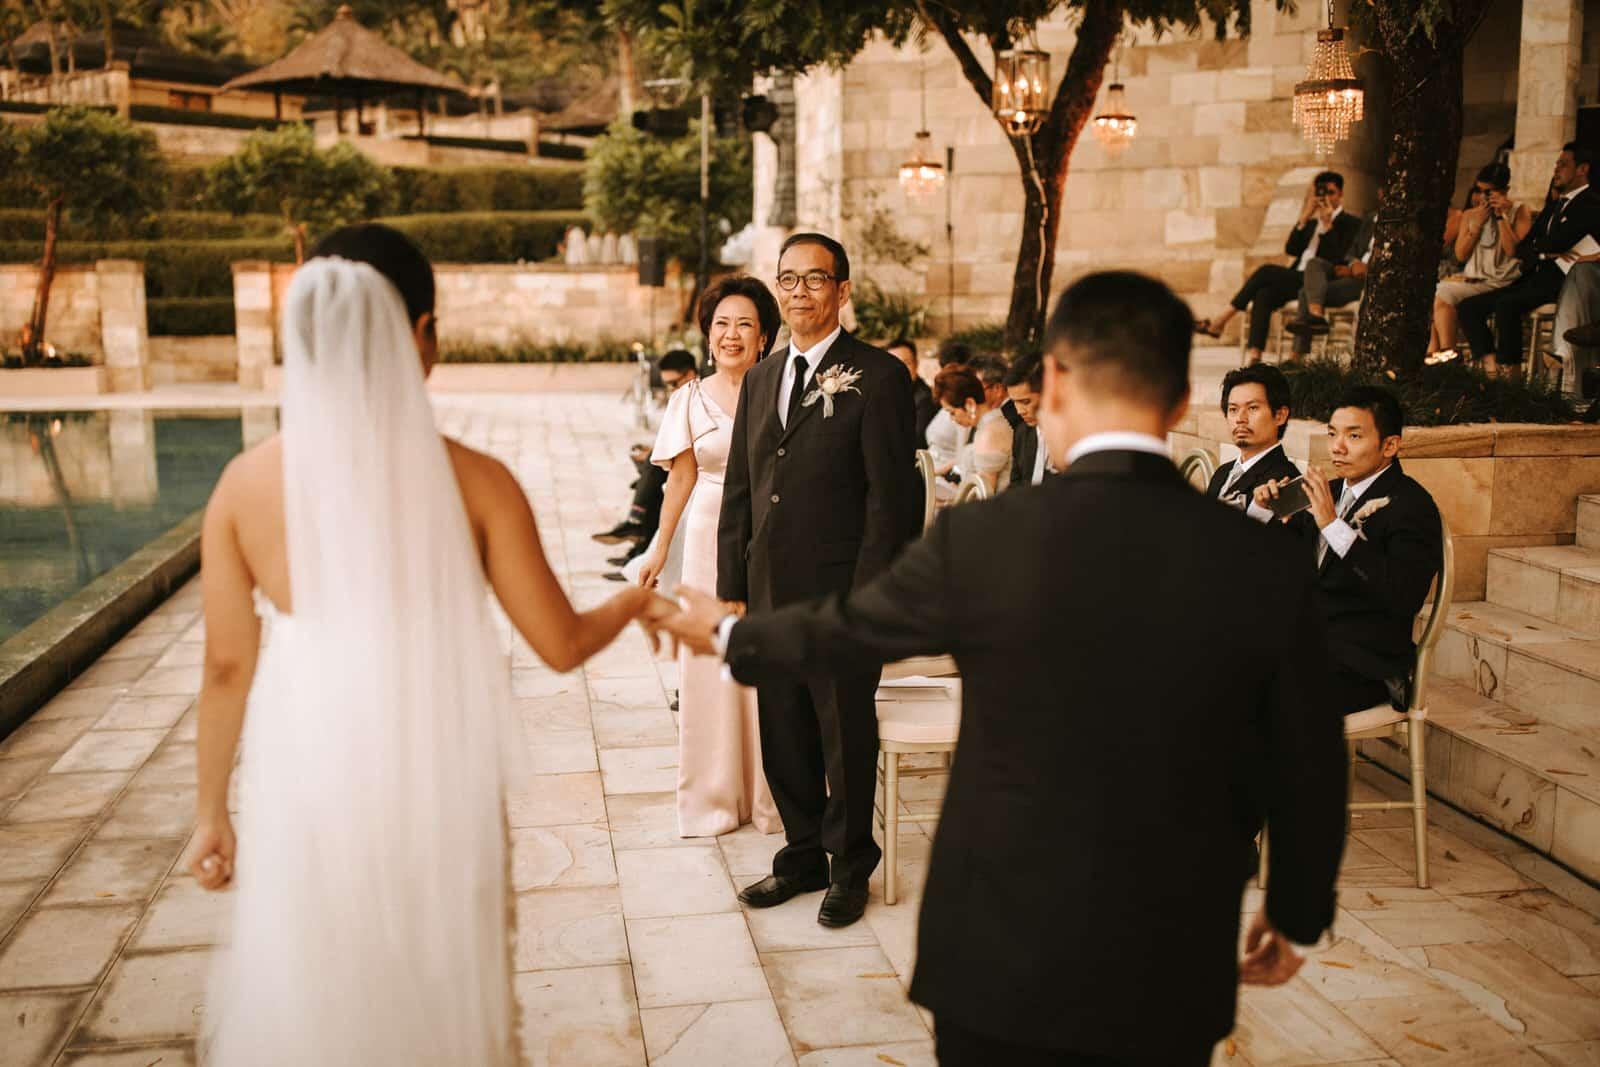 The wedding couple is holding hands and walking along their guests.